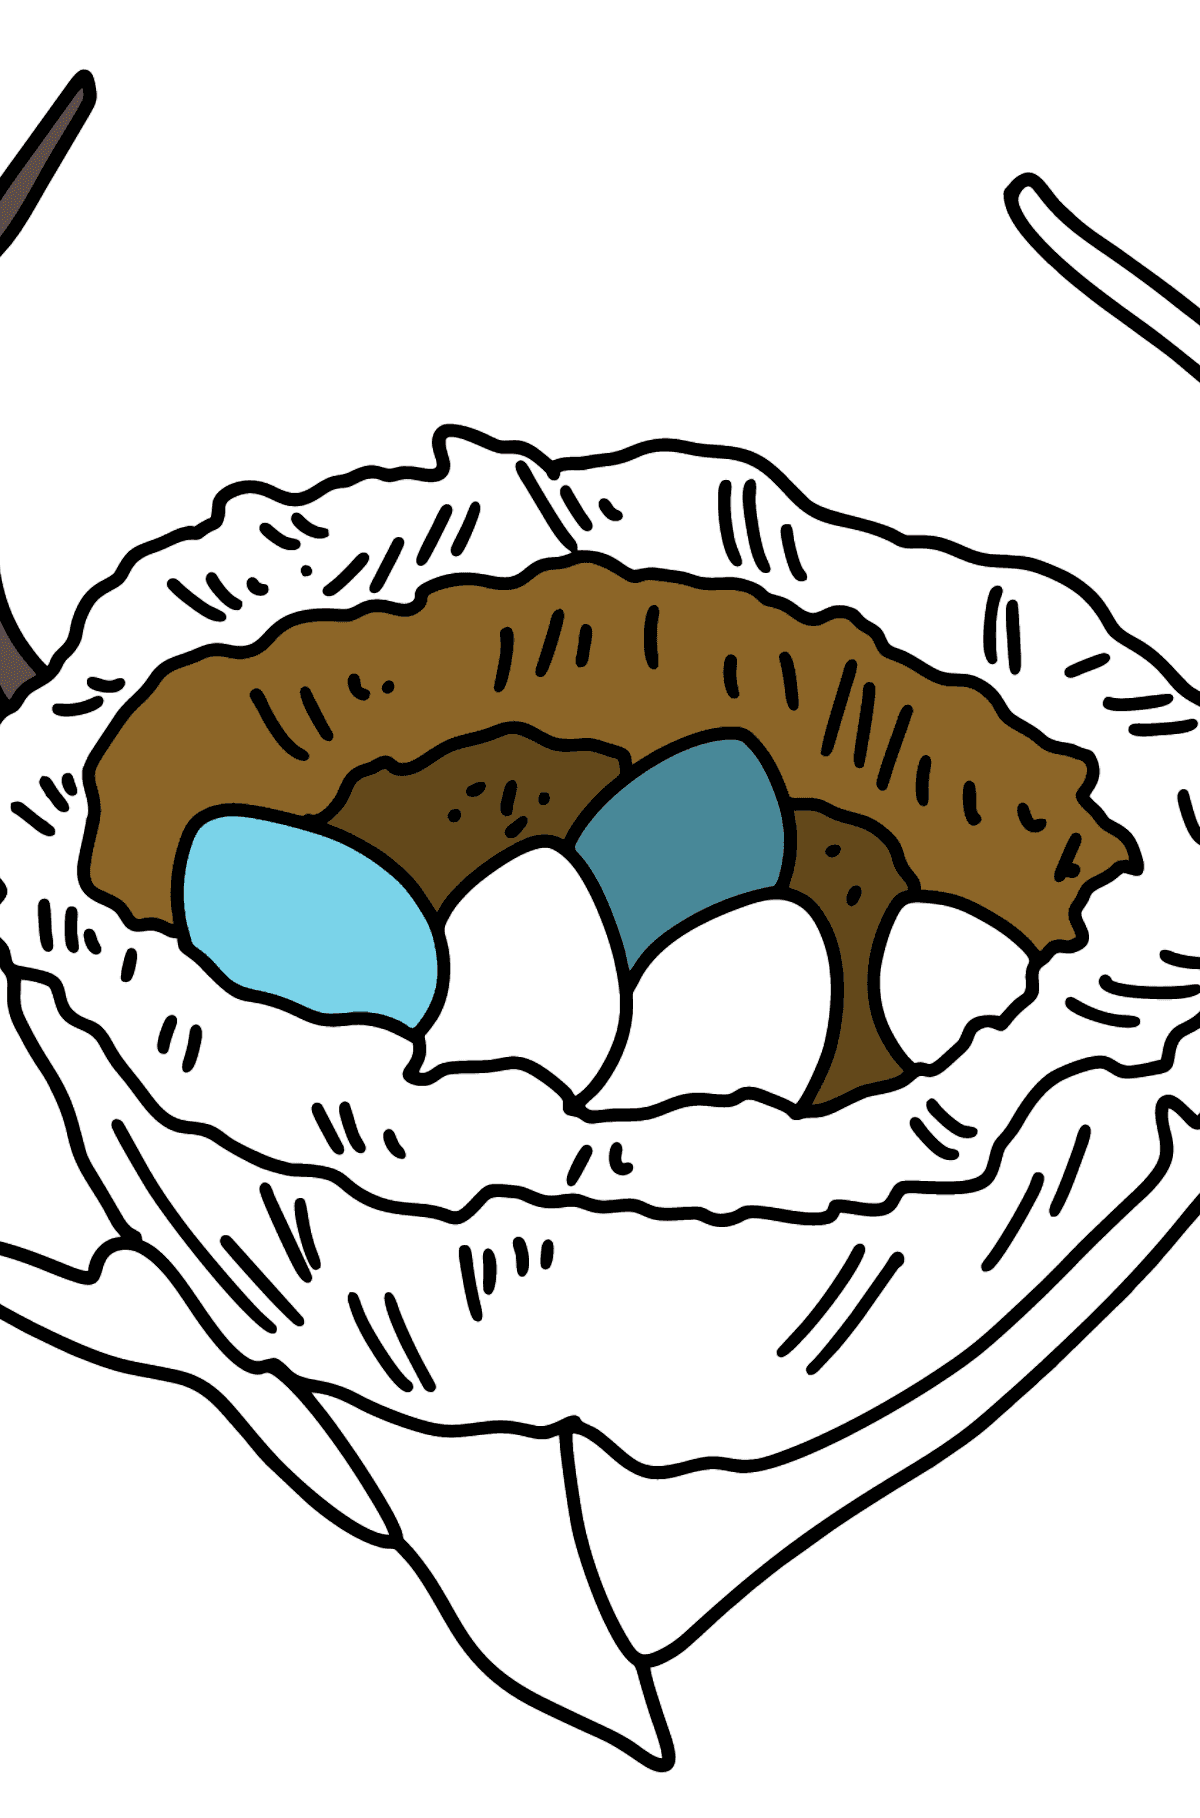 Bird's Nest coloring page - Coloring Pages for Kids